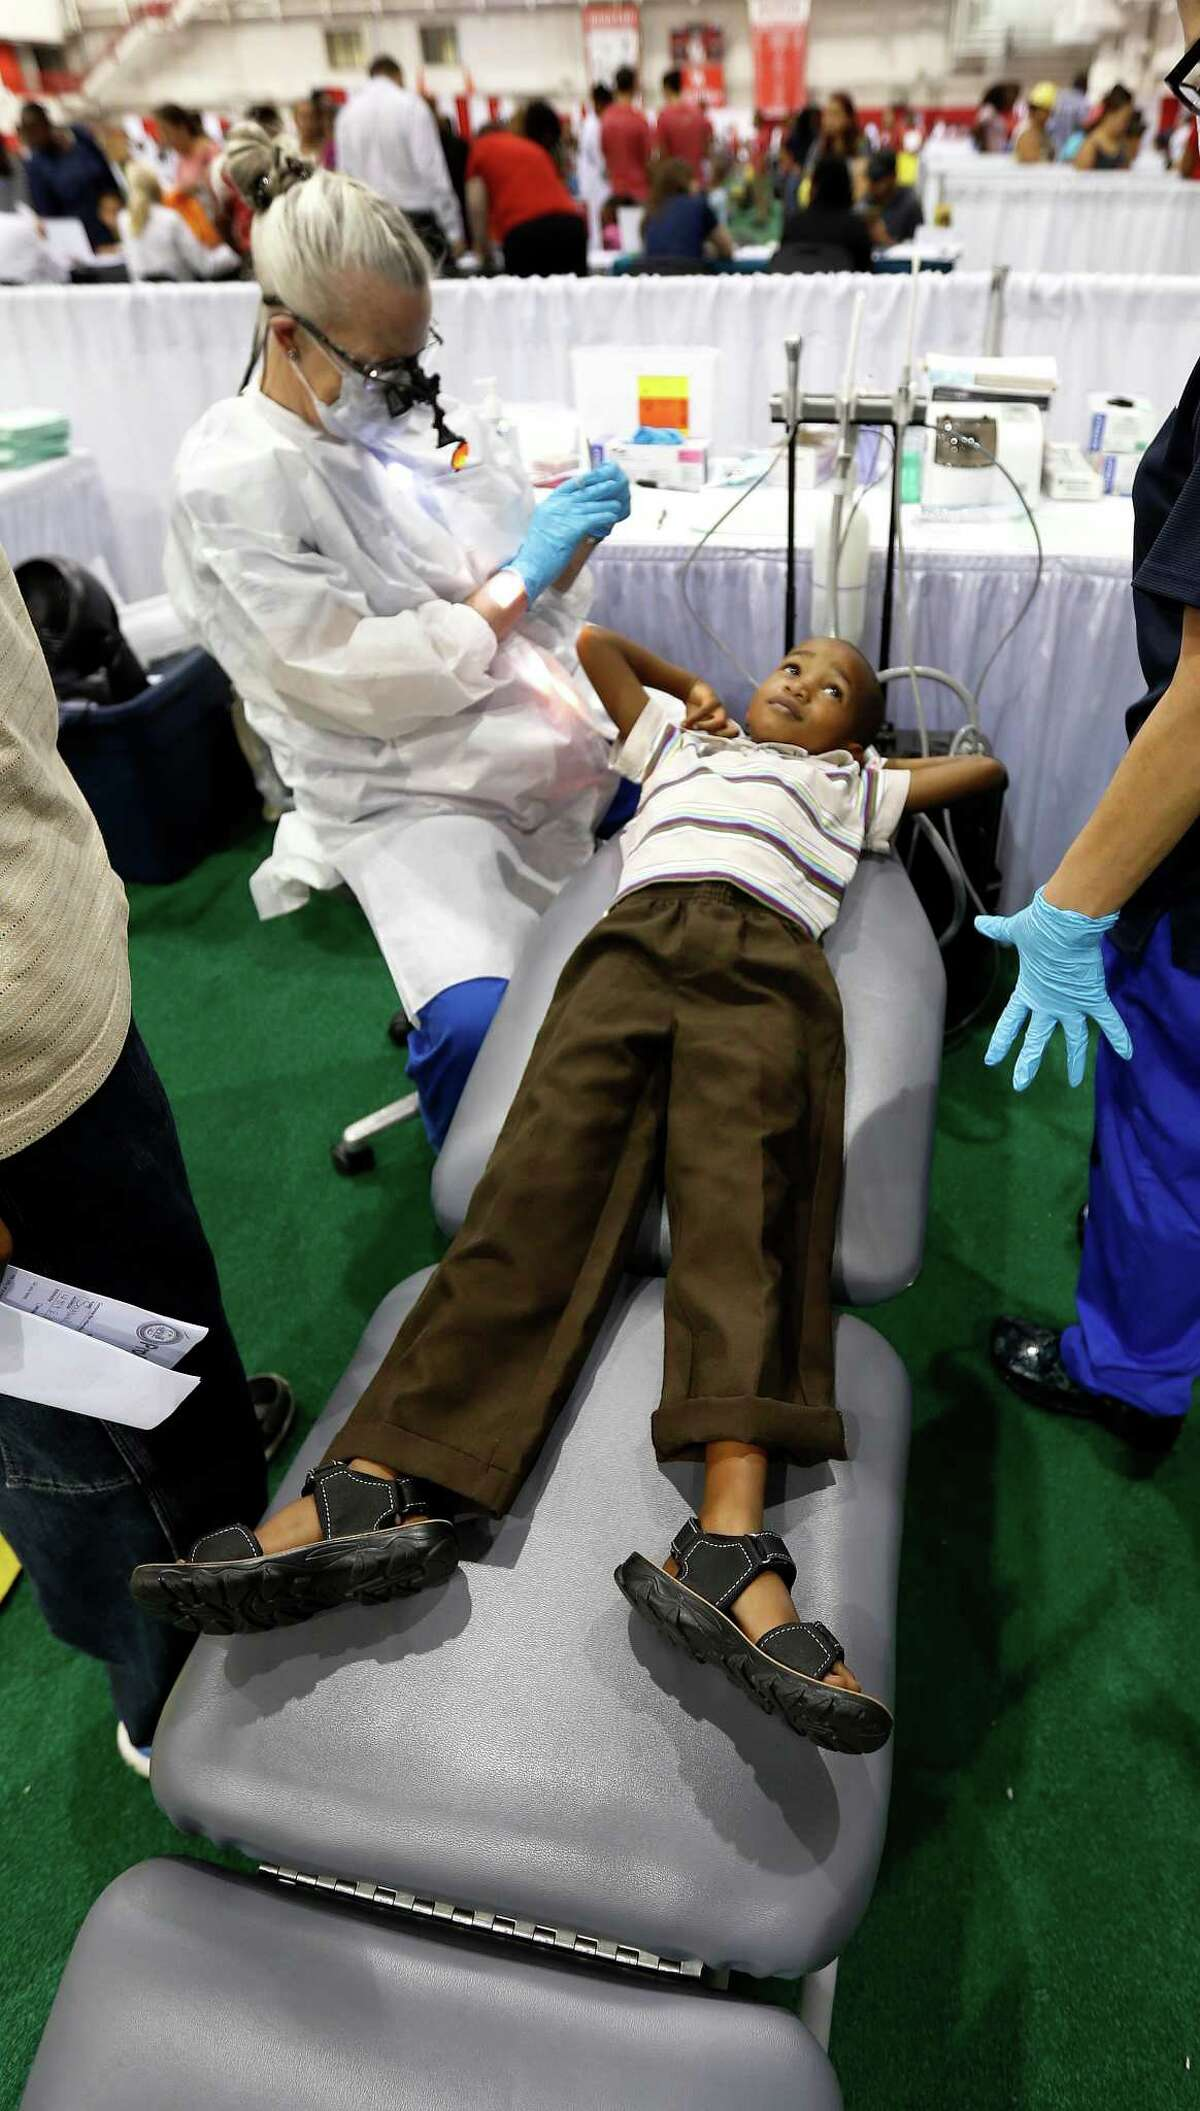 Isaac Mlambo, 6, gets his teeth checked by Johanna DeYoung, Bureau Chief for Oral Health with the City of Houston's Health Department, during the 6th Annual Mayor's Back 2 School Fest.